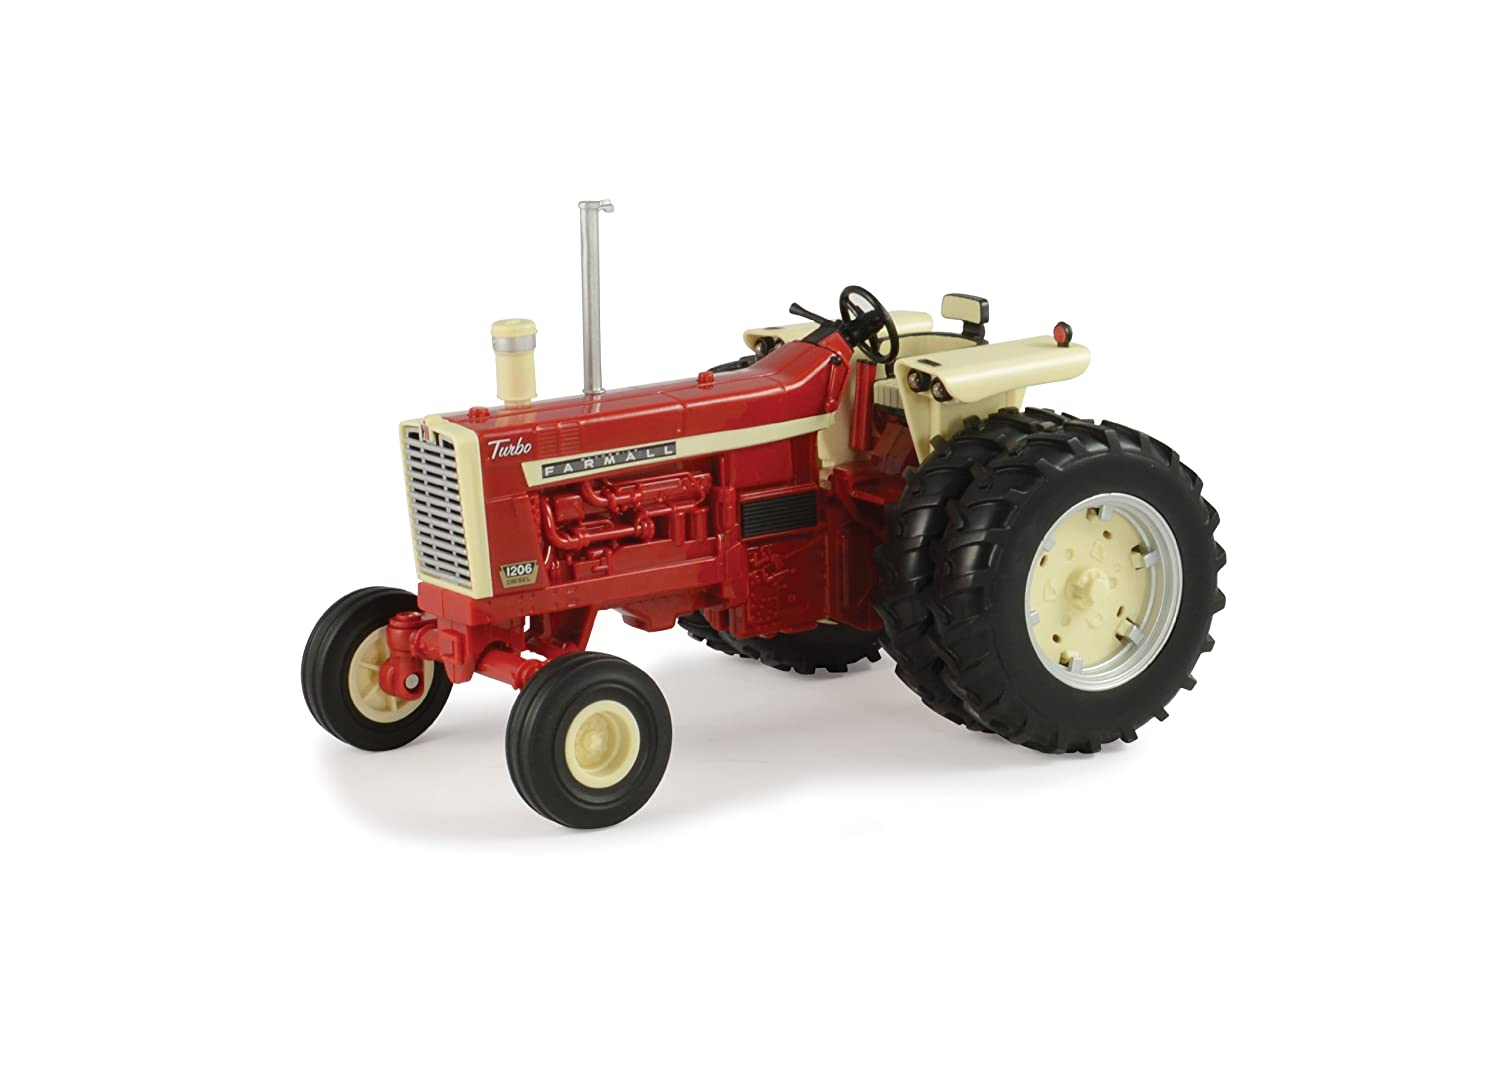 _SL1500_ amazon com ertl big farm 1 16 ih 1206 wide front tractor toys